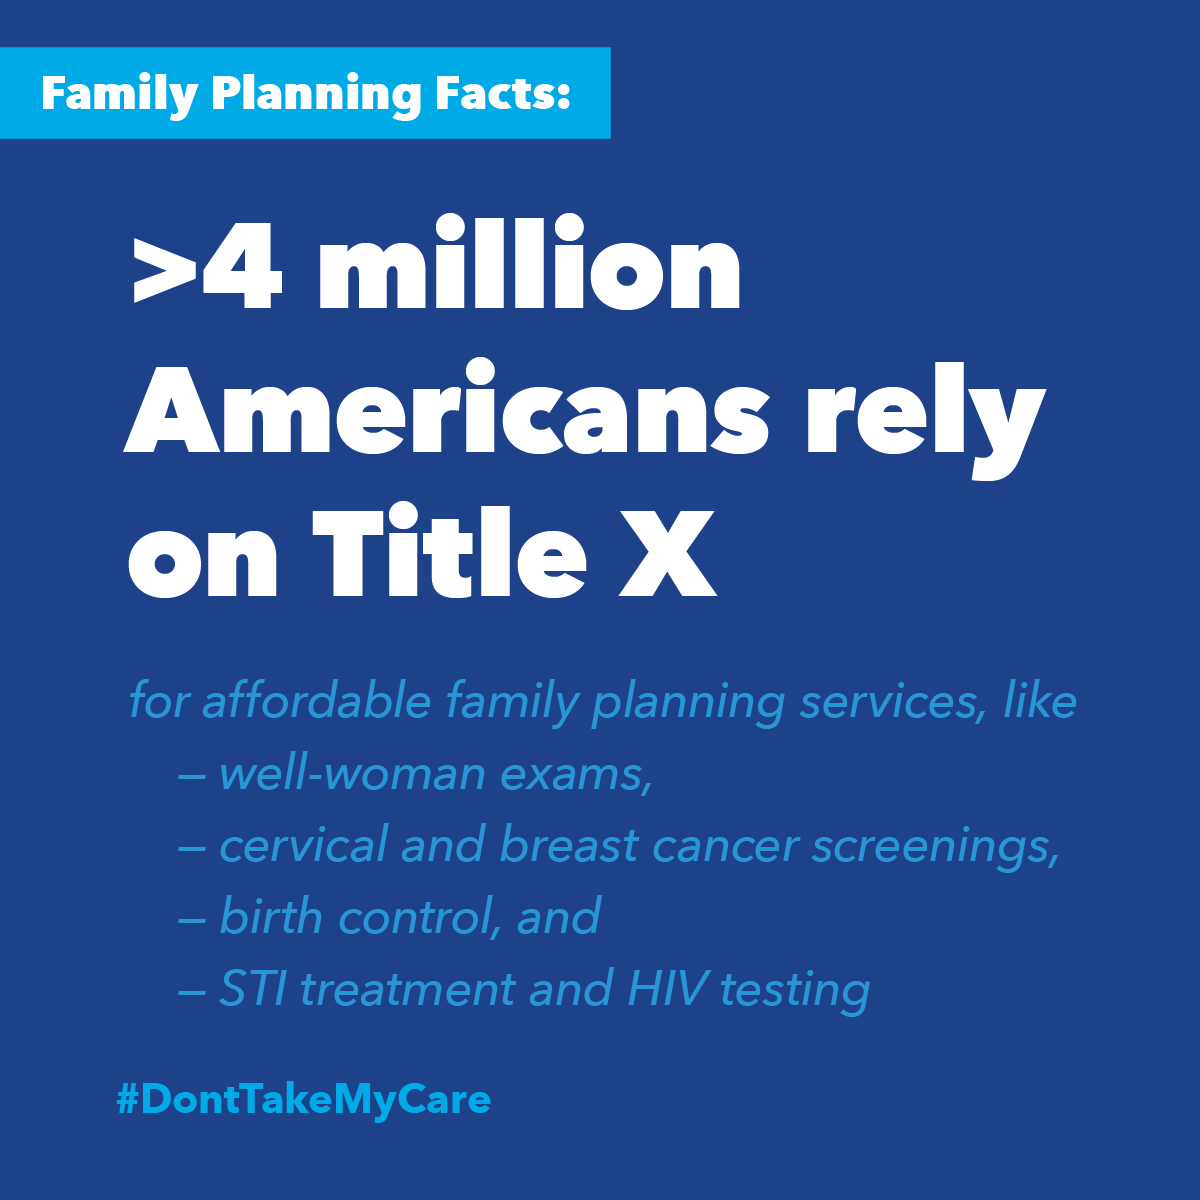 Over 4 million people rely on Title X.